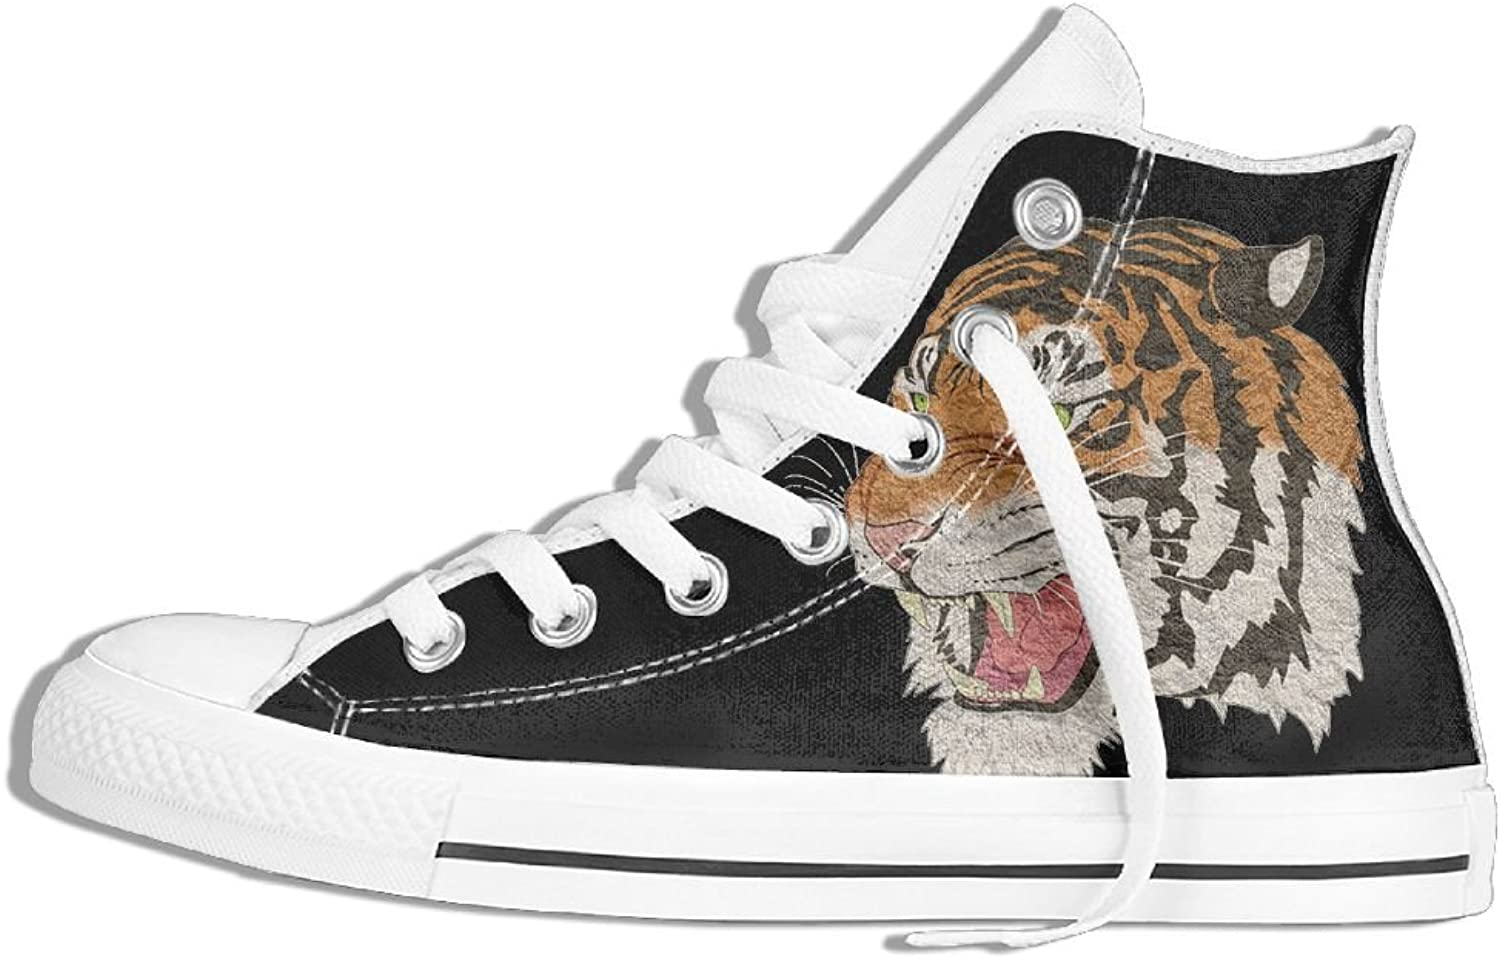 Unisex High Top Sneakers shoes Tiger Round Toe Anti-slip Walking Canvas Trainers shoes